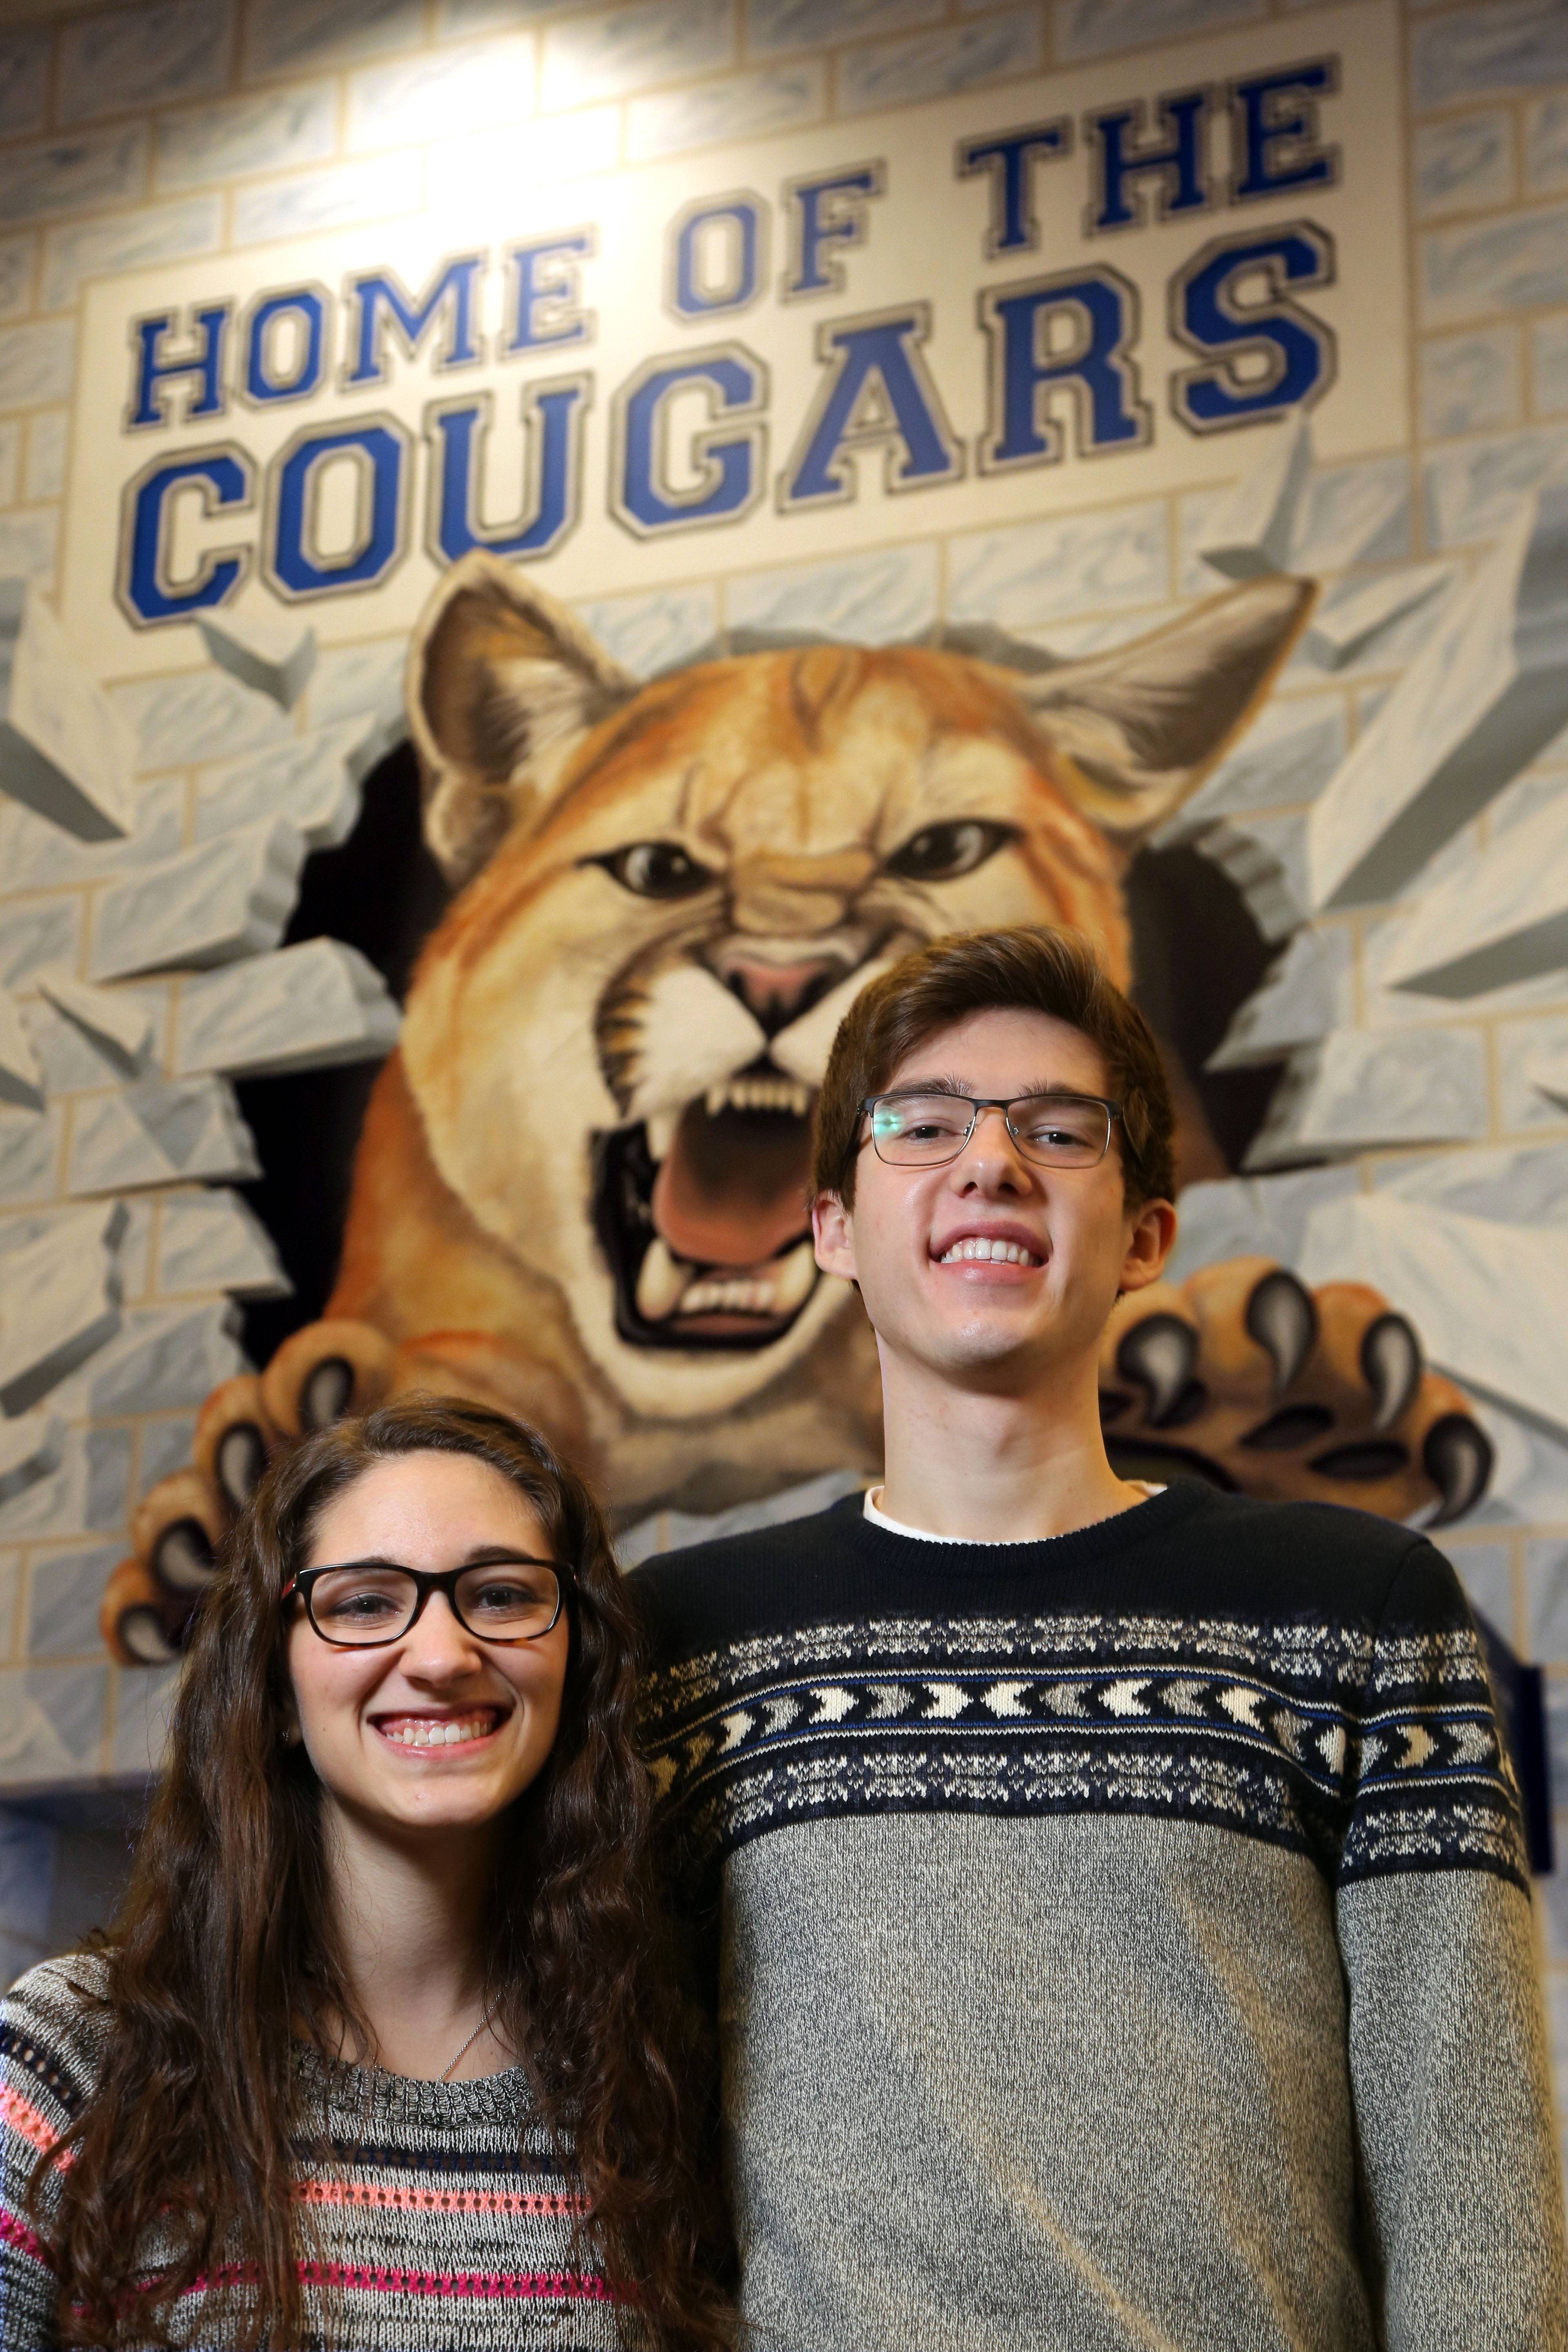 Vernon Hills High School students Serena Panos, 16, left, and Jack Brandl, 18, participated in a service project called the VING project. For this project, both students submitted a one-minute video explaining why a person who they know deserves to receive $1,000.